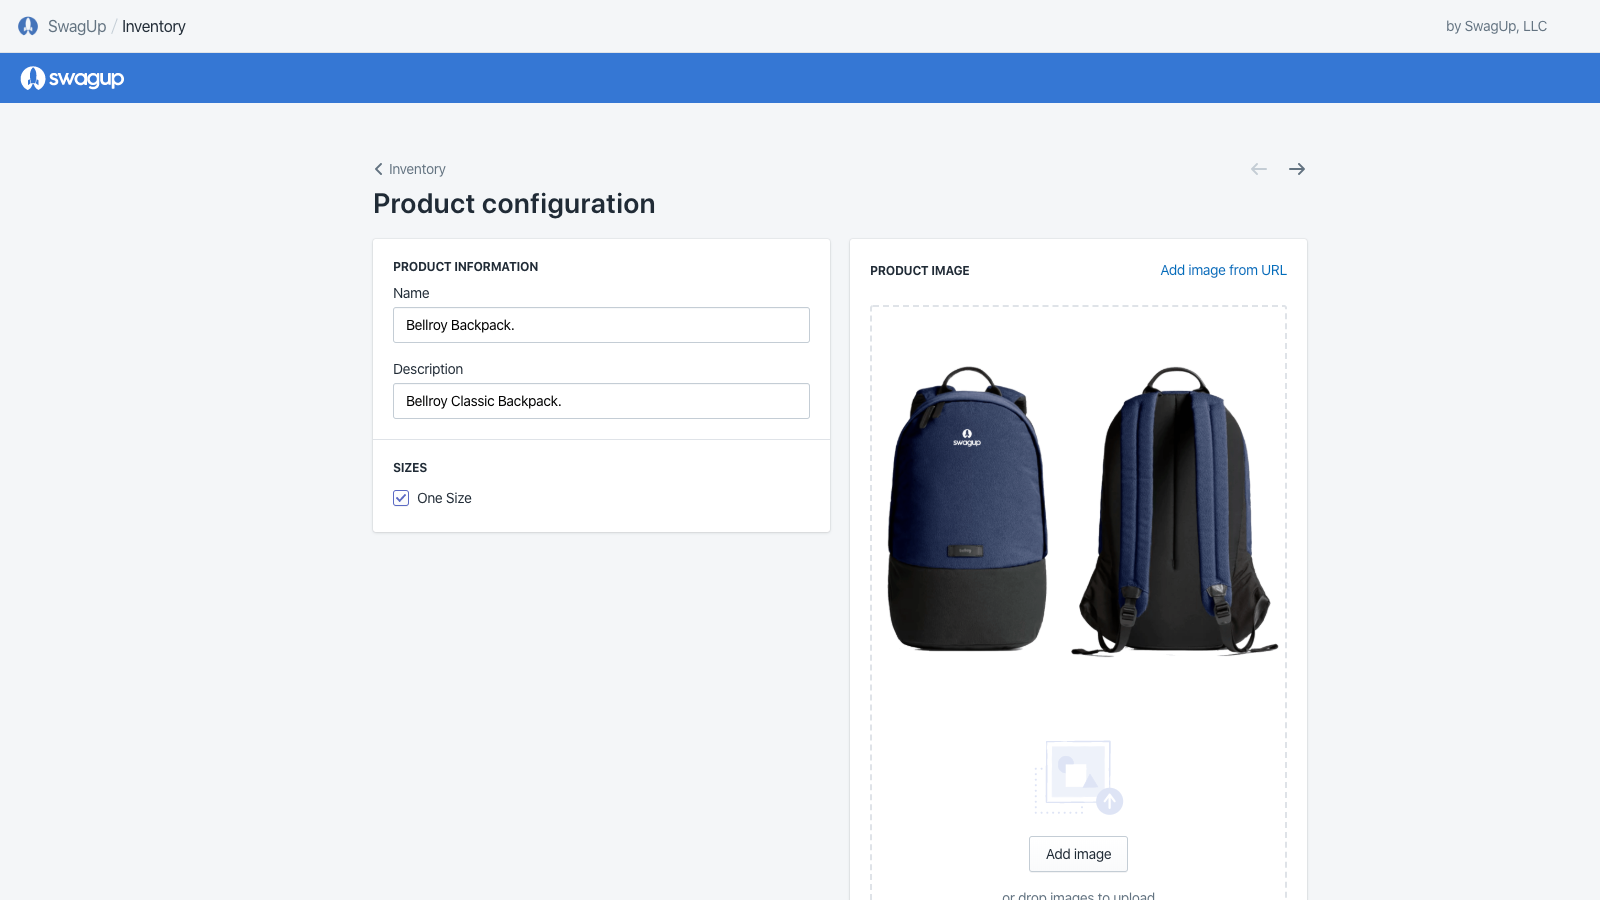 SwagUp - Shopify App Product Configuration Page